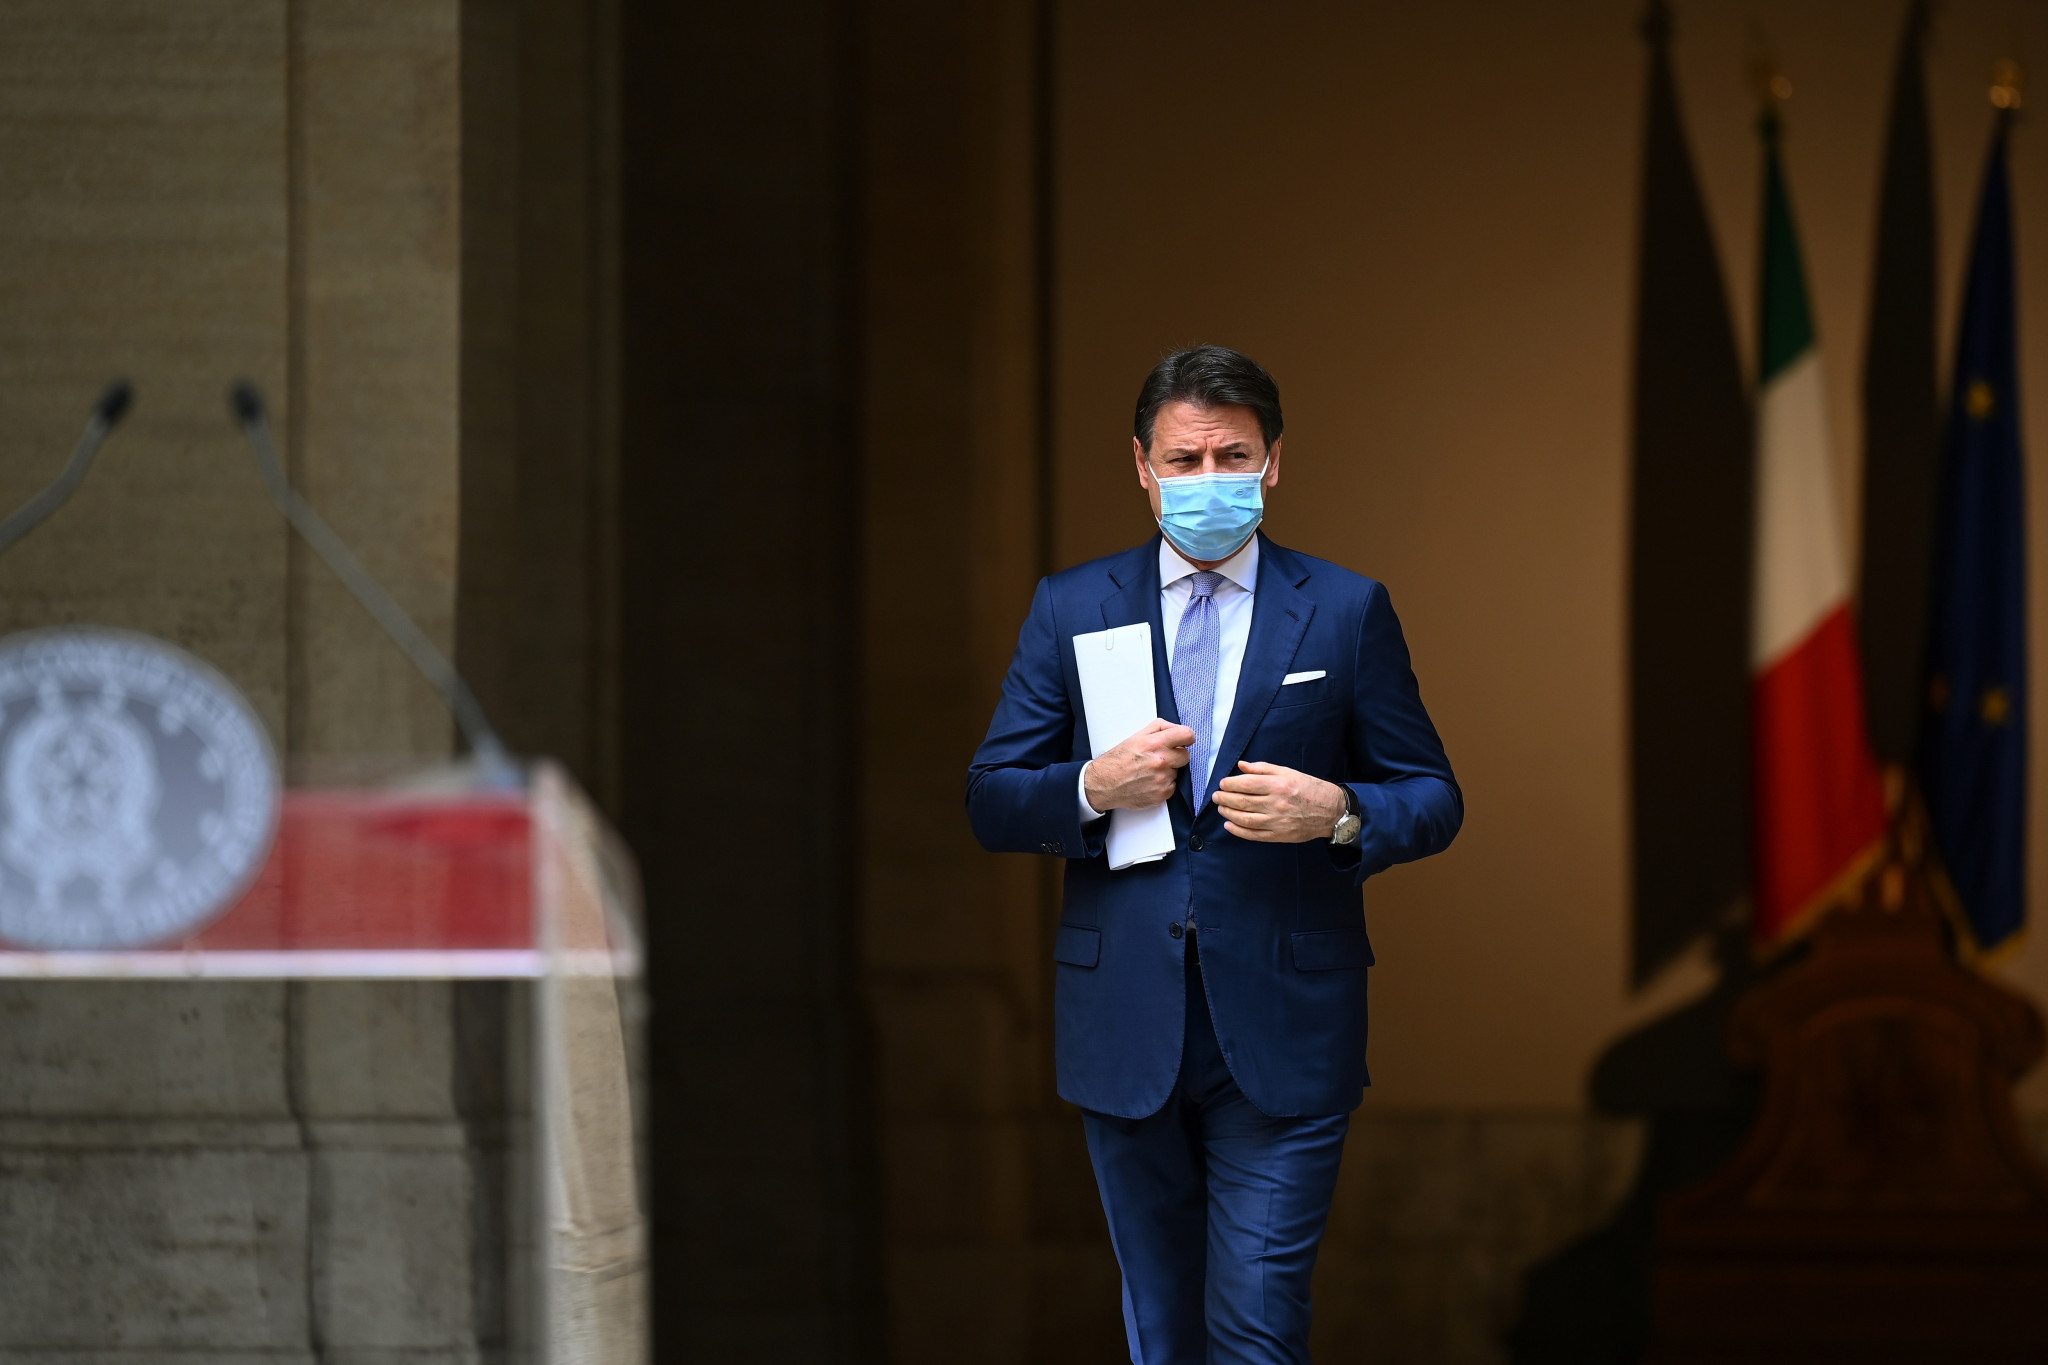 Italian Prime Minister Giuseppe Conte has prohibited fans attending matches today ©Getty Images